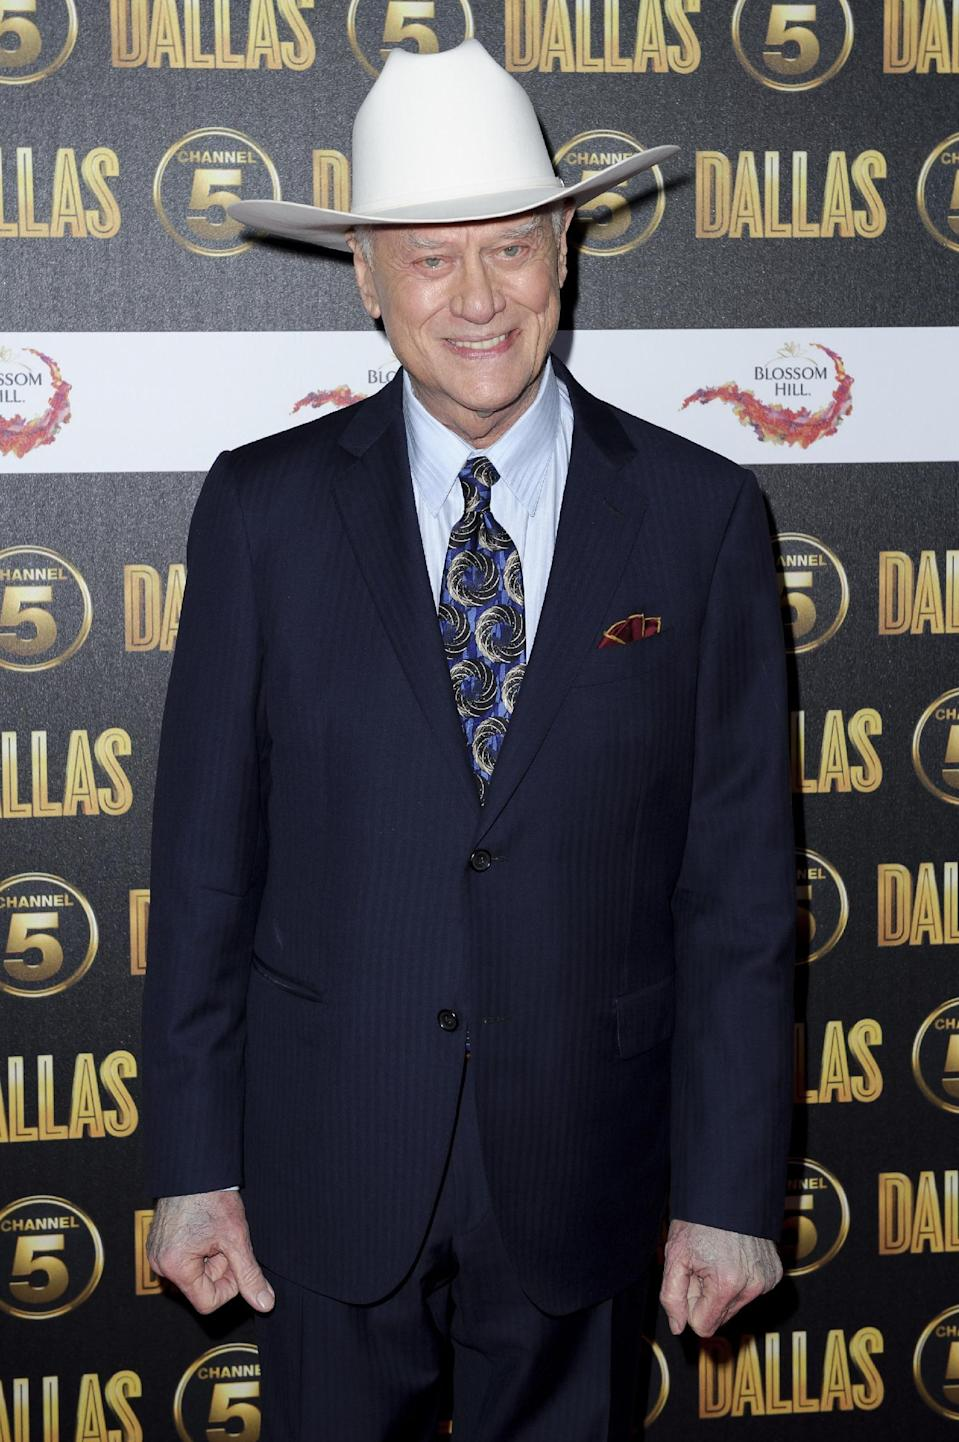 """FILE - In this Aug. 21, 2012 file photo, Larry Hagman arrives for the """"Dallas"""" launch party at a venue in central London. The Emmys will honor the late actors Hagman and Jack Klugman as part of an in memoriam package, but the two are not among those singled out for separate tributes. (AP Photo/Jonathan Short, File)"""